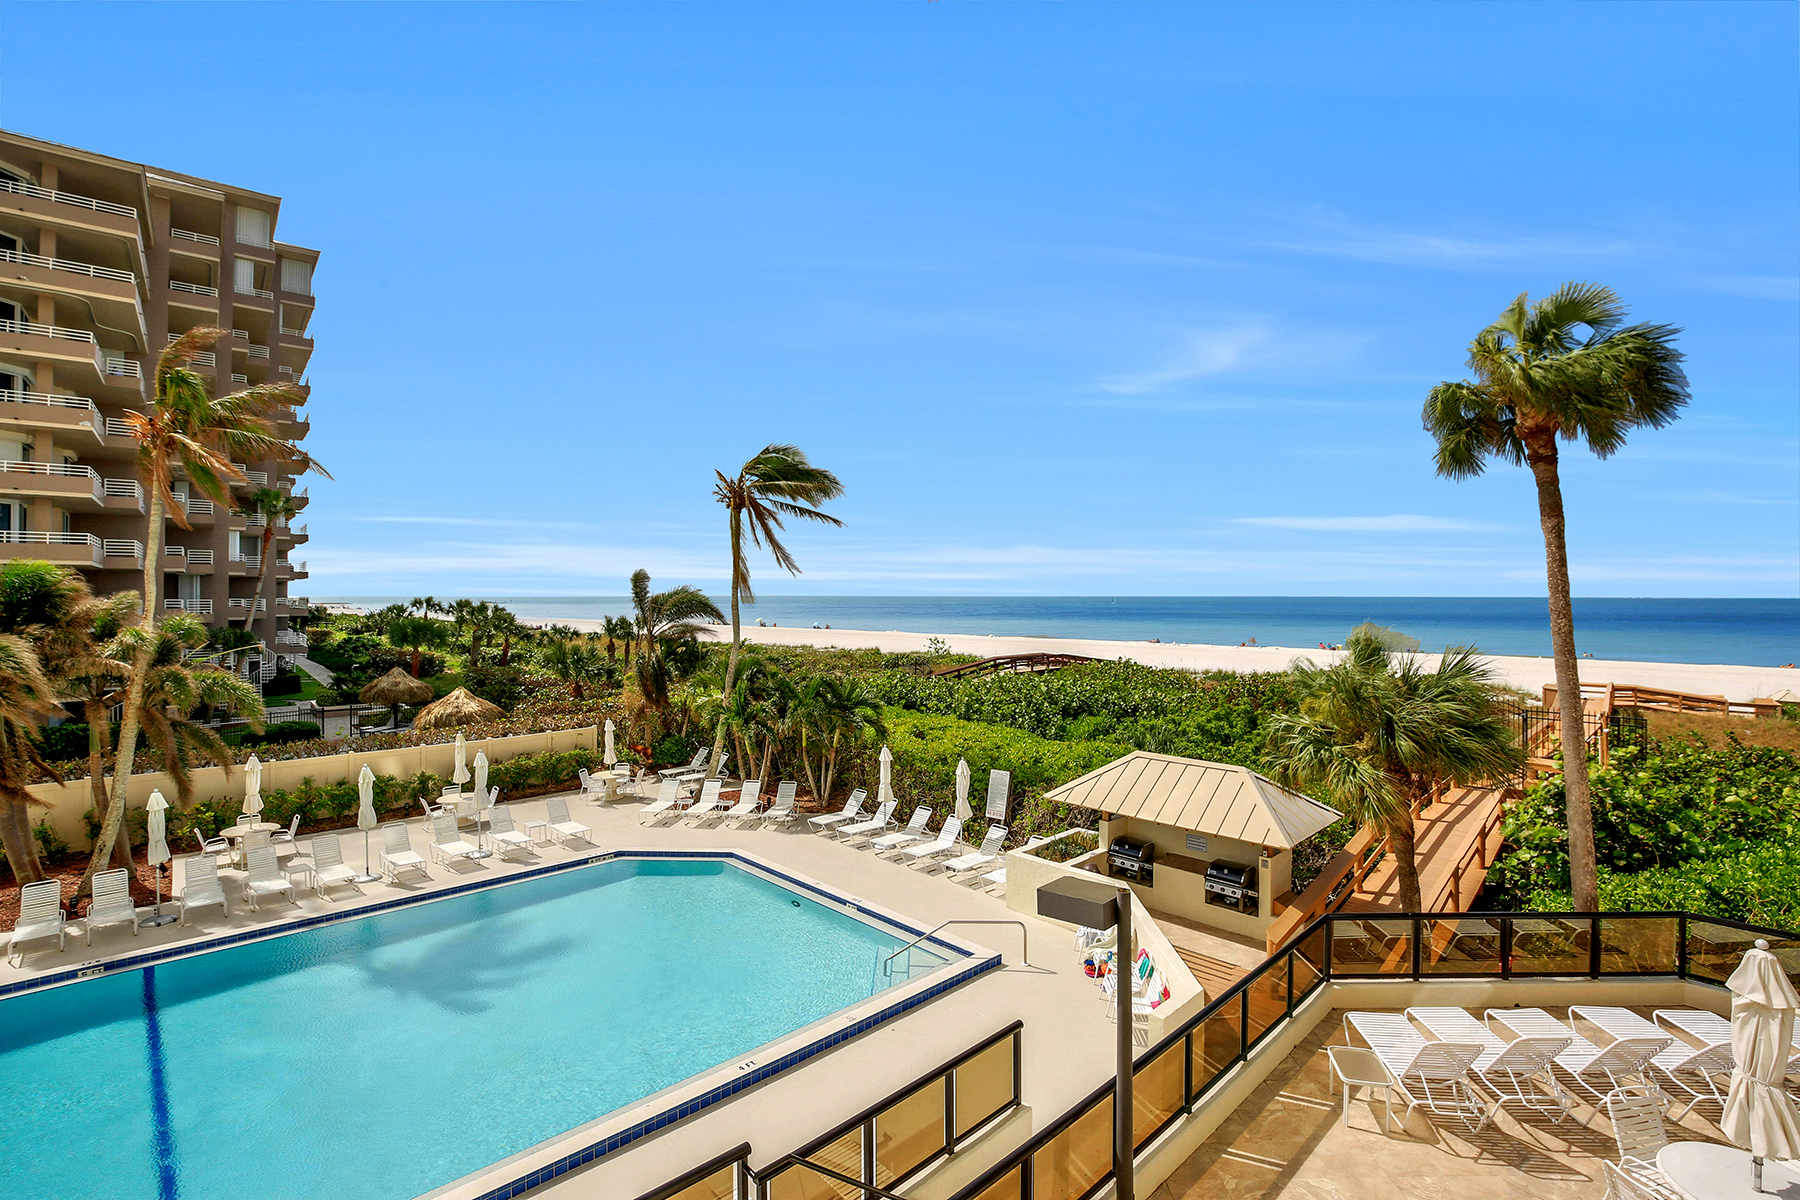 Condominium for Sale at MARCO ISLAND 730 S Collier Blvd 103, Marco Island, Florida 34145 United States